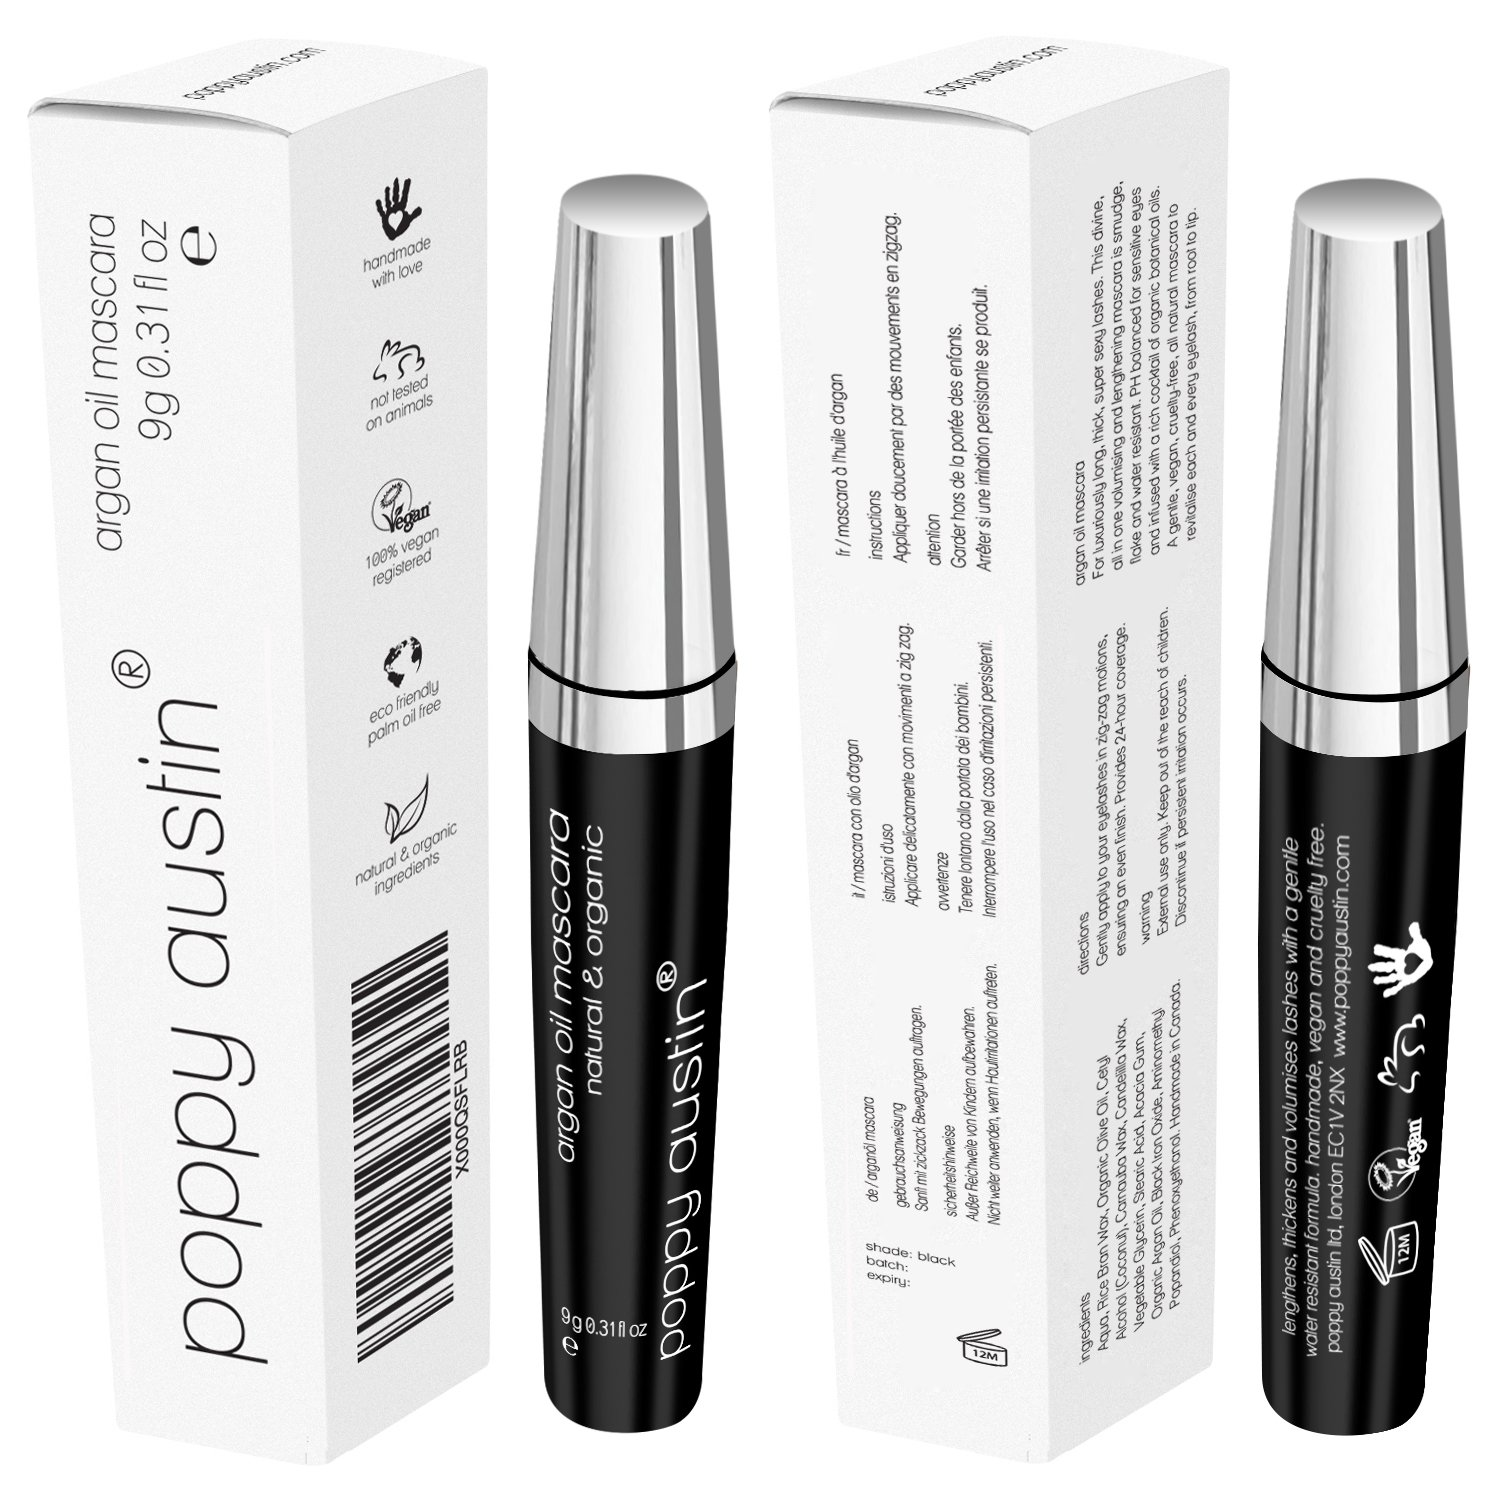 39df7634952 FINEST Vegan & Organic Lengthening Mascara Black With Argan Oil - Cruelty- Free, Best Natural Volumising, Thickening, Smudge Proof, Hypoallergenic, ...